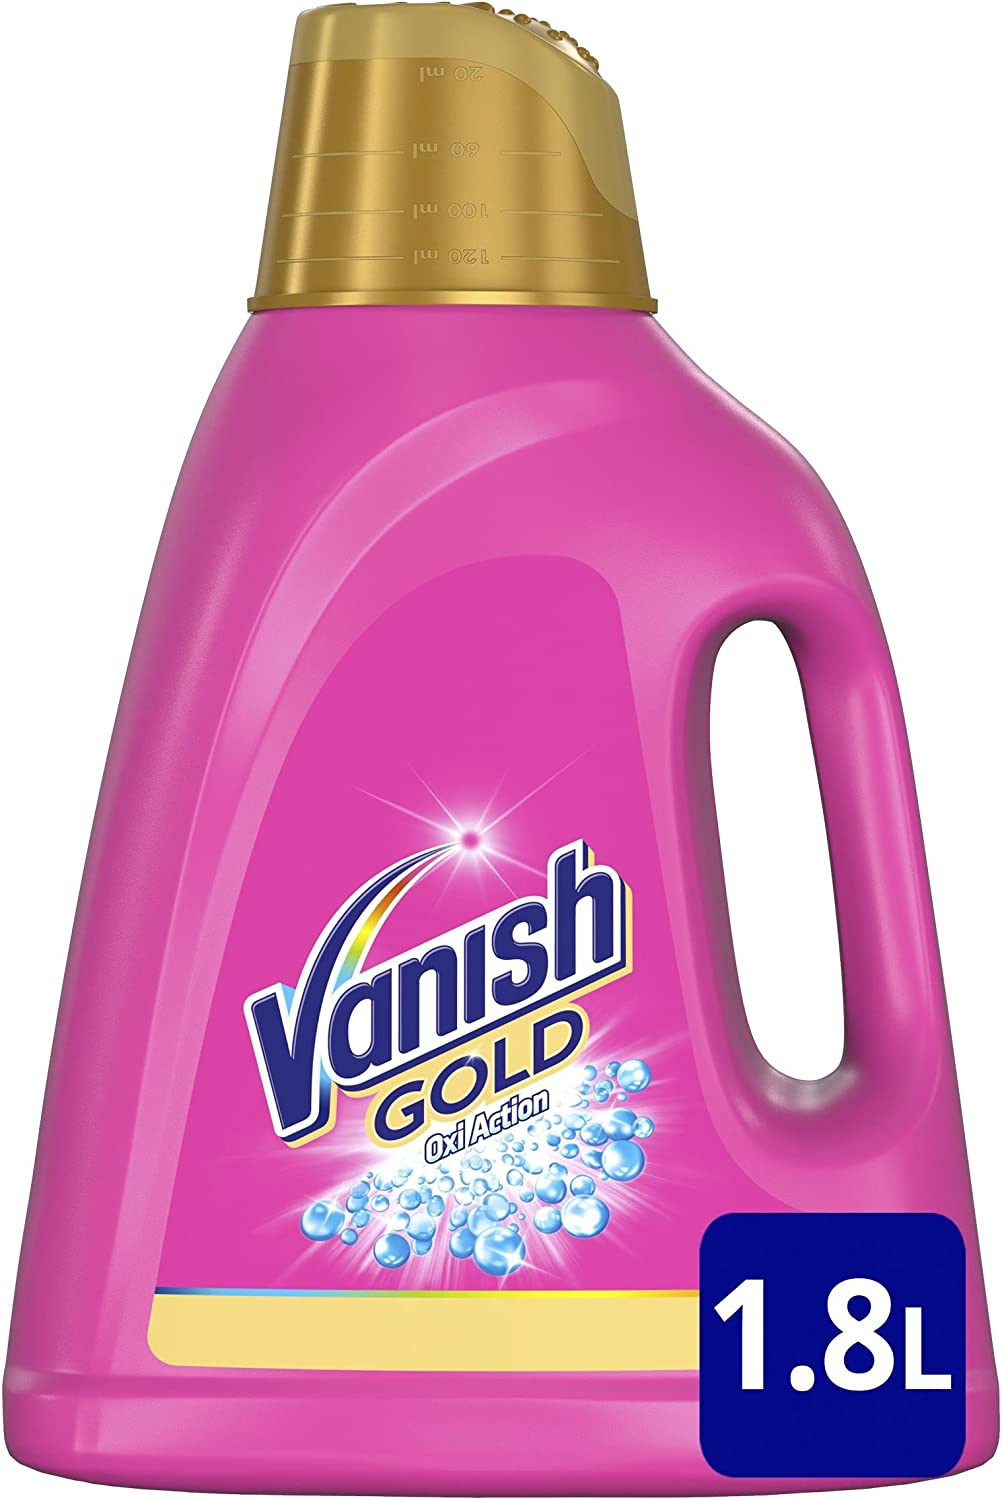 Vanish Gold Oxi Action Quitamanchas Gel - 1.88 L: Amazon.es: Salud ...